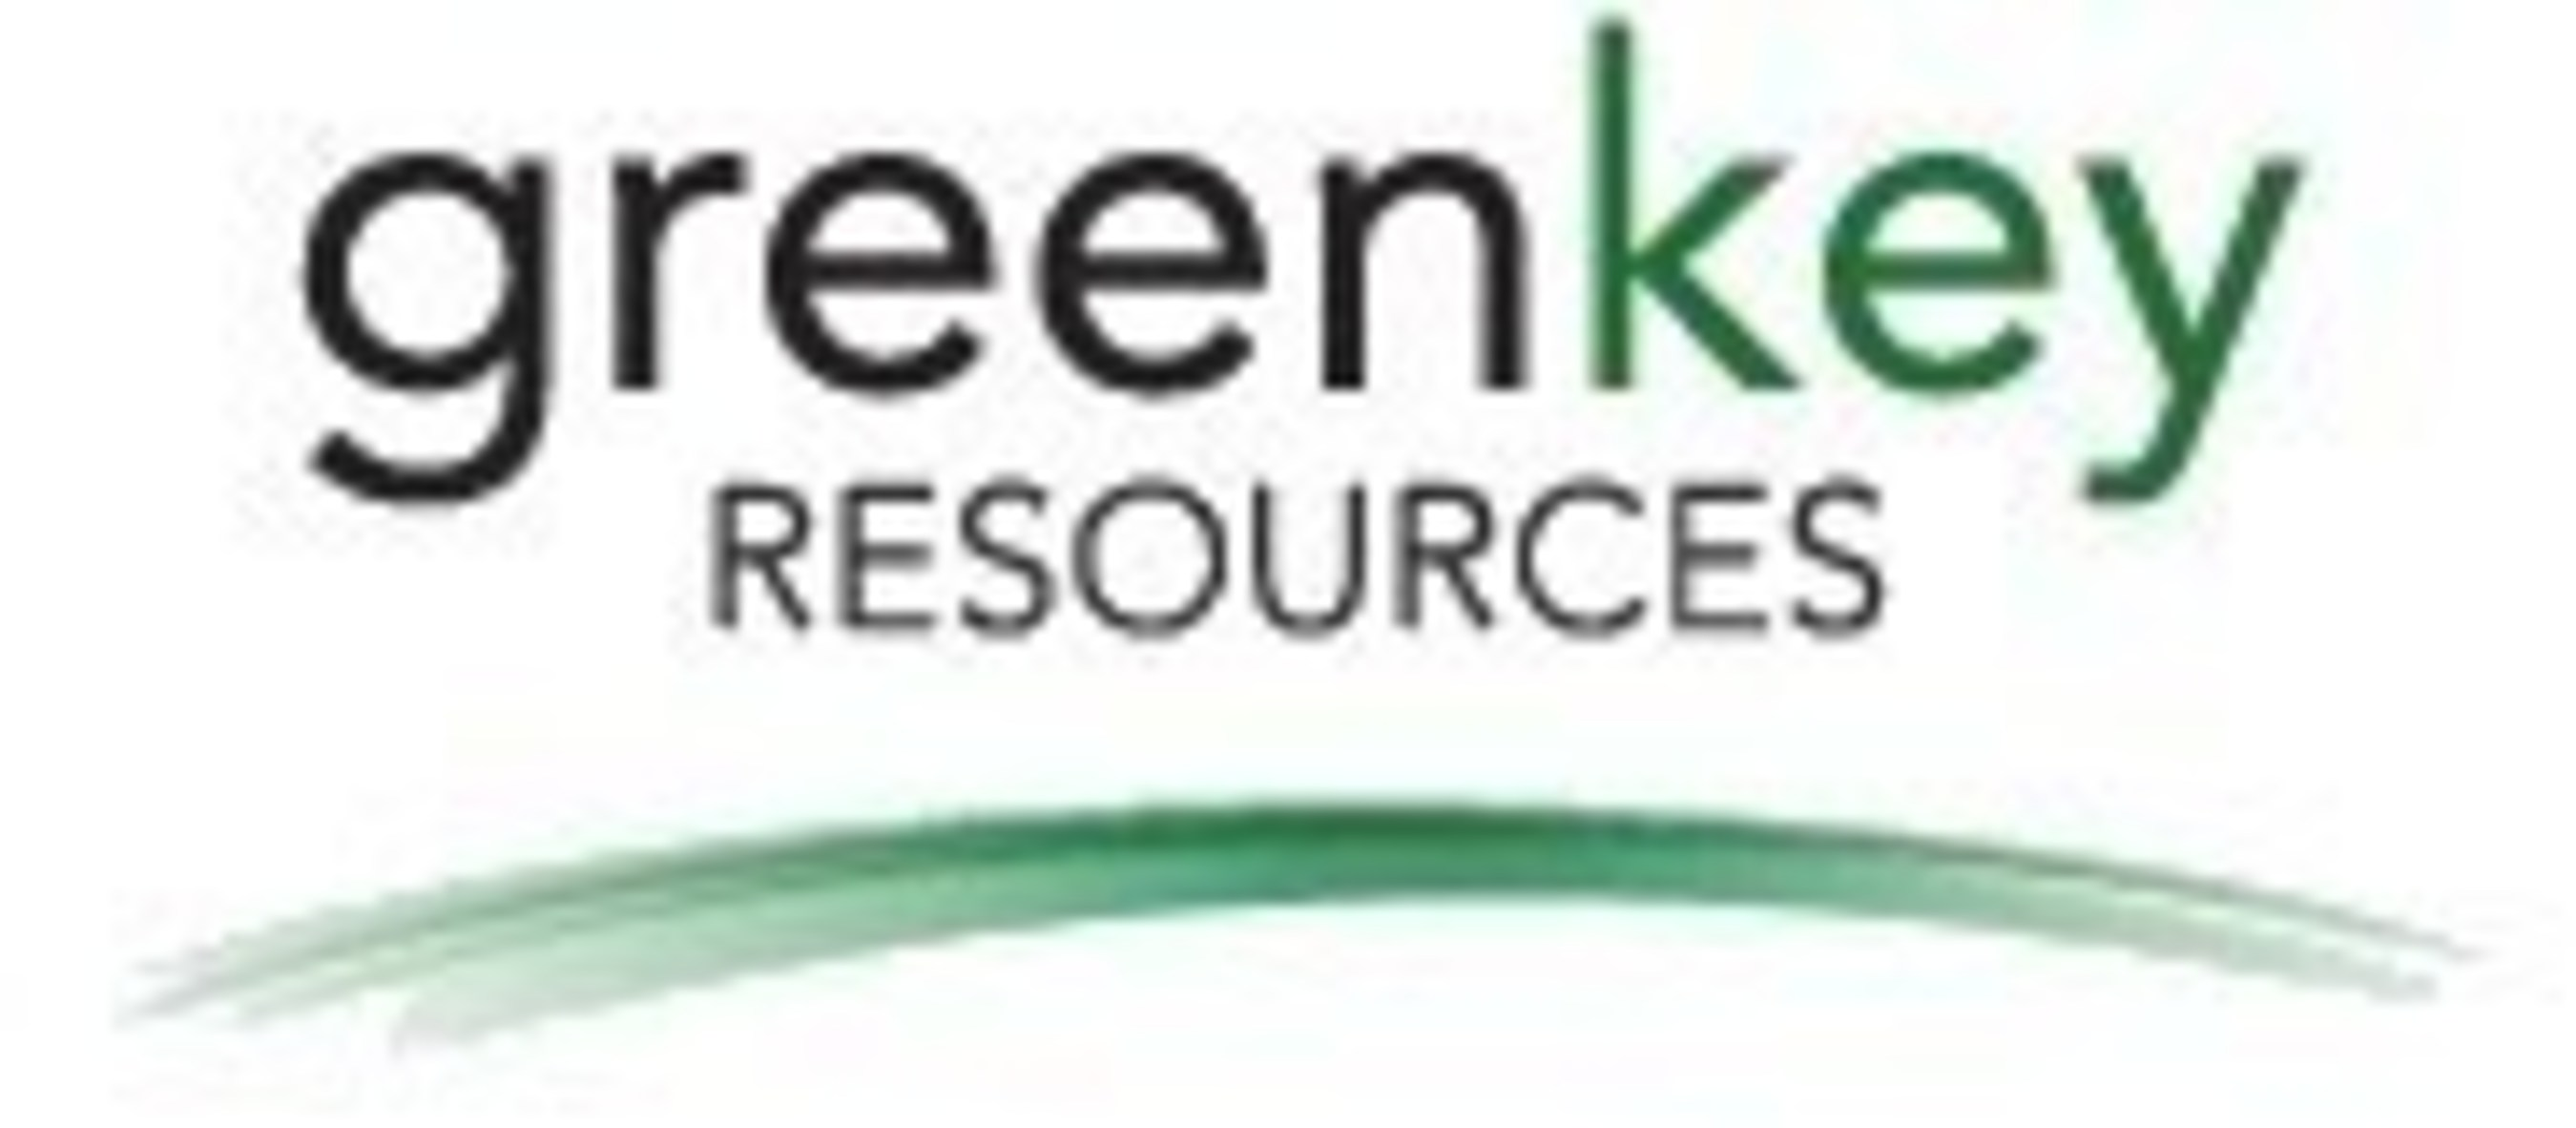 Green Key Resources Recognized As 'Most Socially Engaged Staffing Firm'